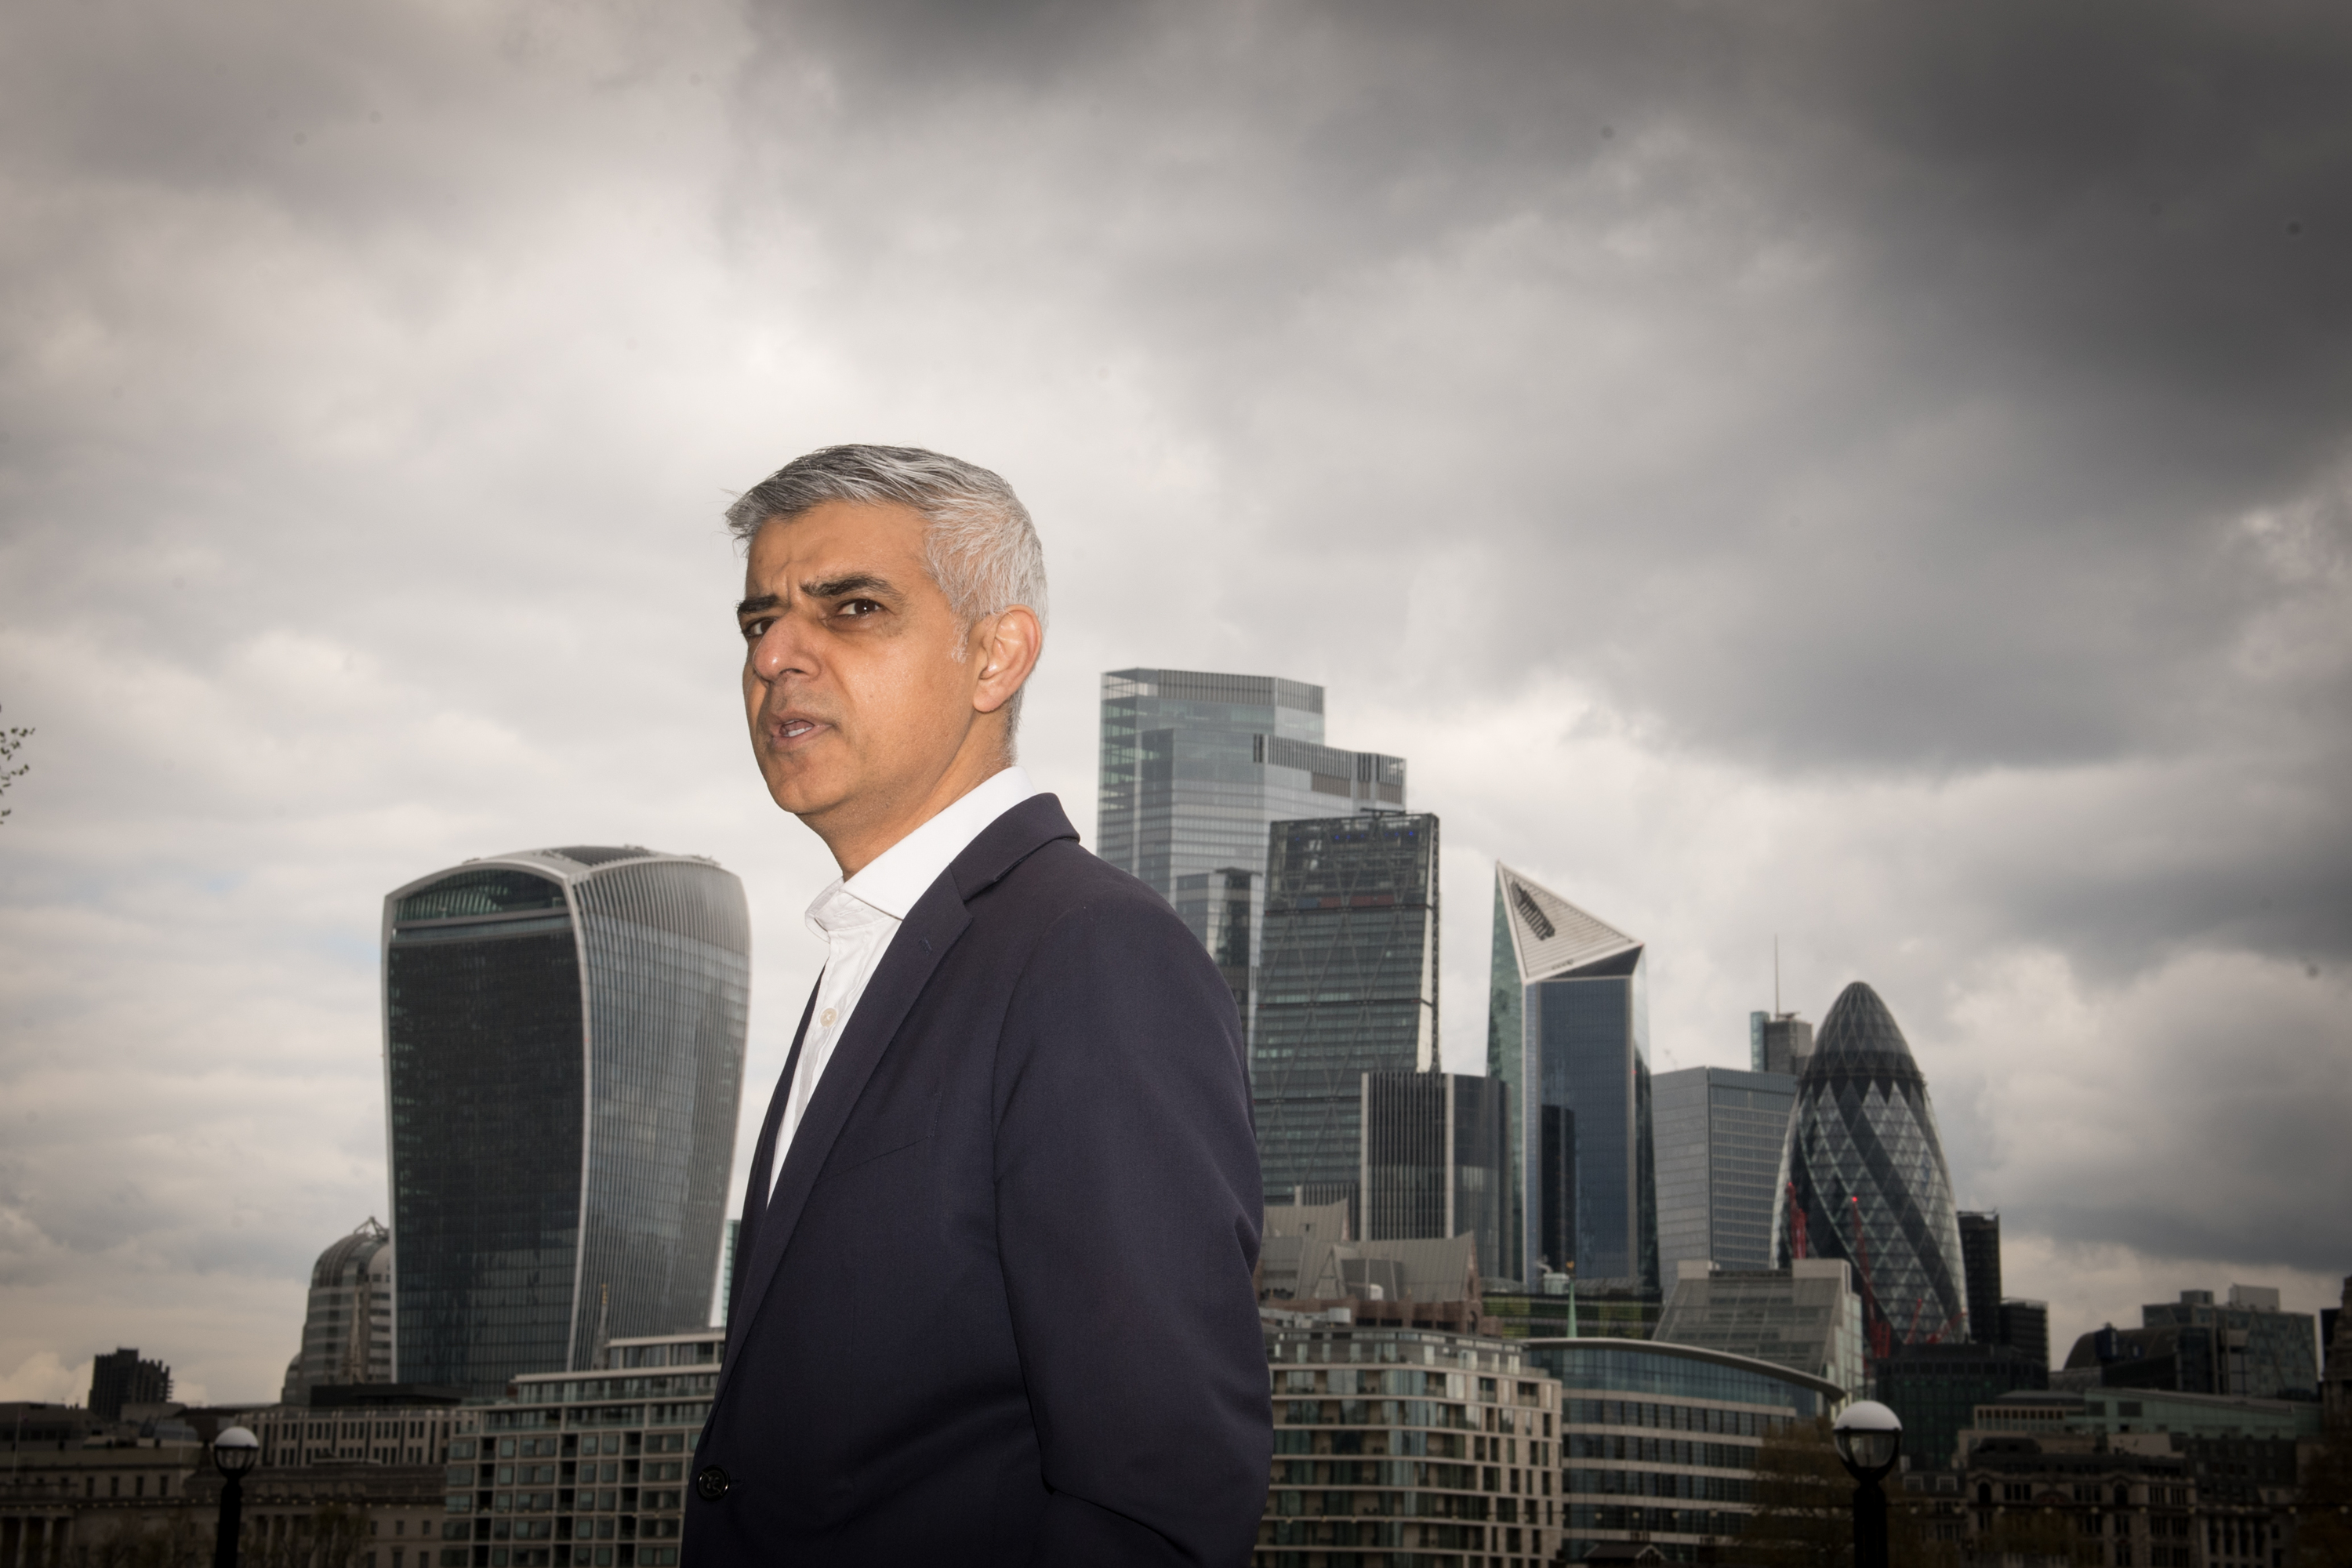 <p>The Mayor of London, Sadiq Khan near City Hall, London, where he called on Londoners to give him a firm mandate to push for more affordable rents in the capital. Picture date: Thurday April 29, 2021.</p>